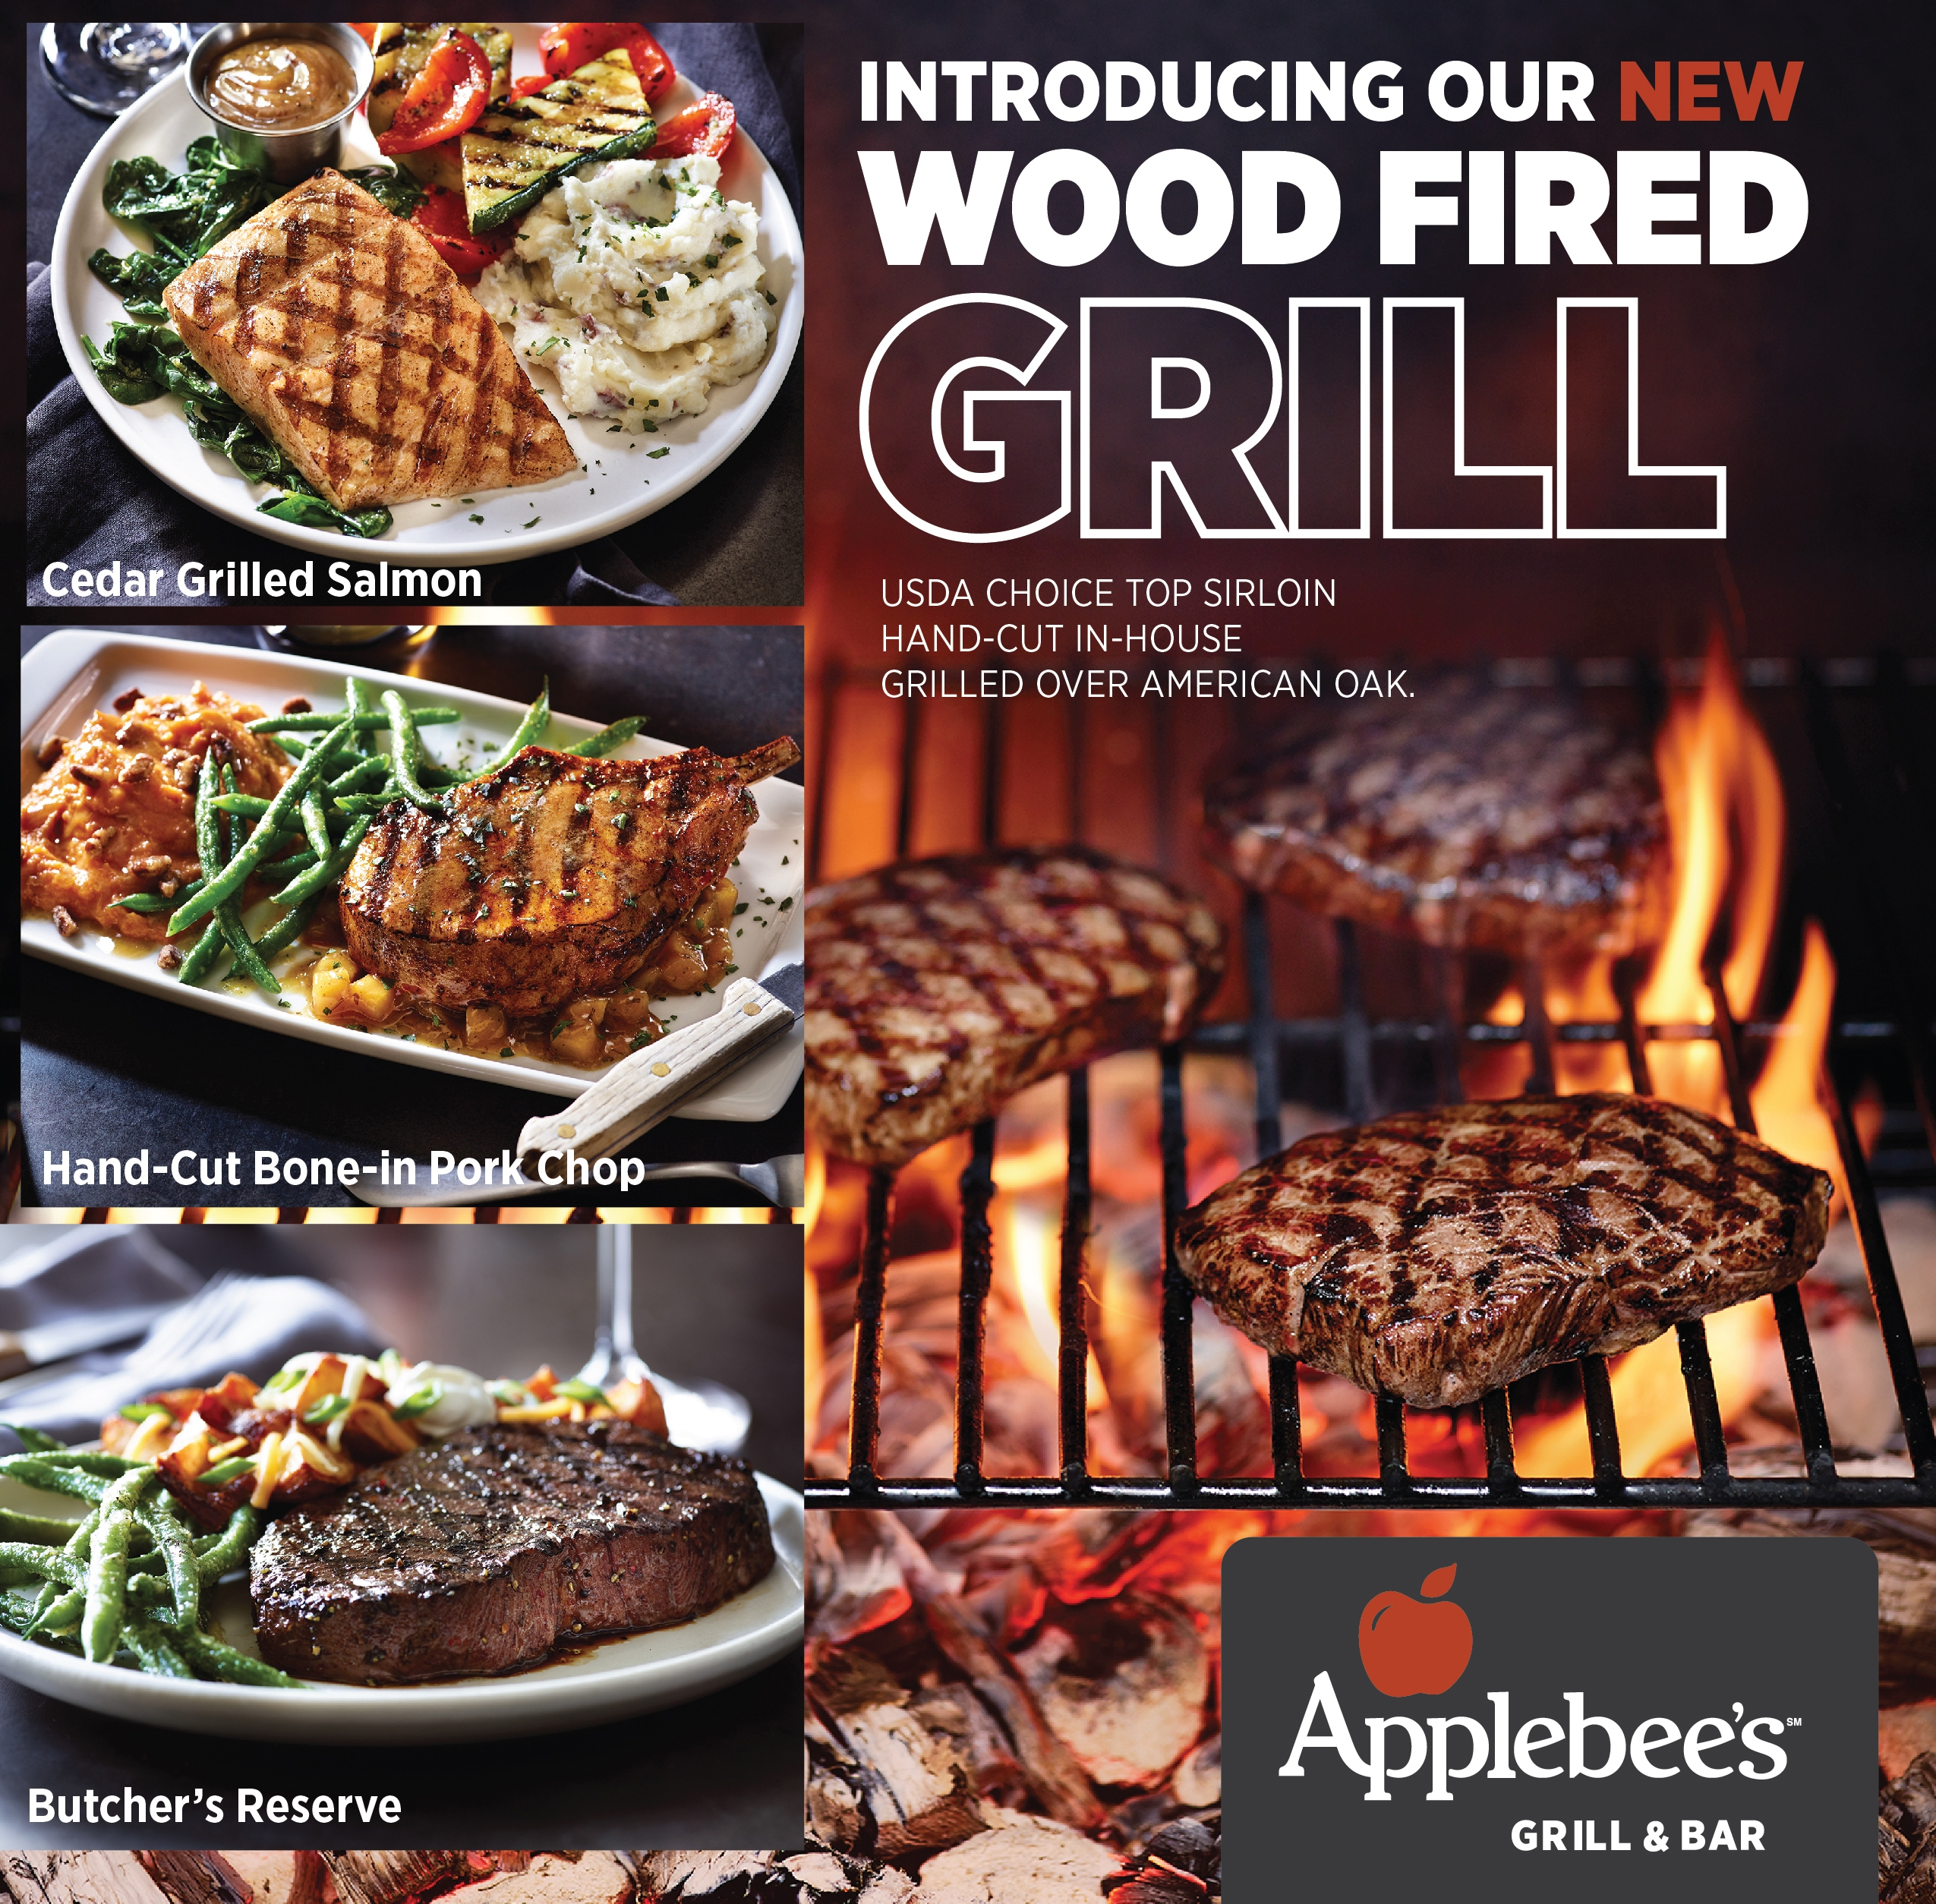 applebees gift card special my devotional thoughts applebee s 25 gift card giveaway 1190